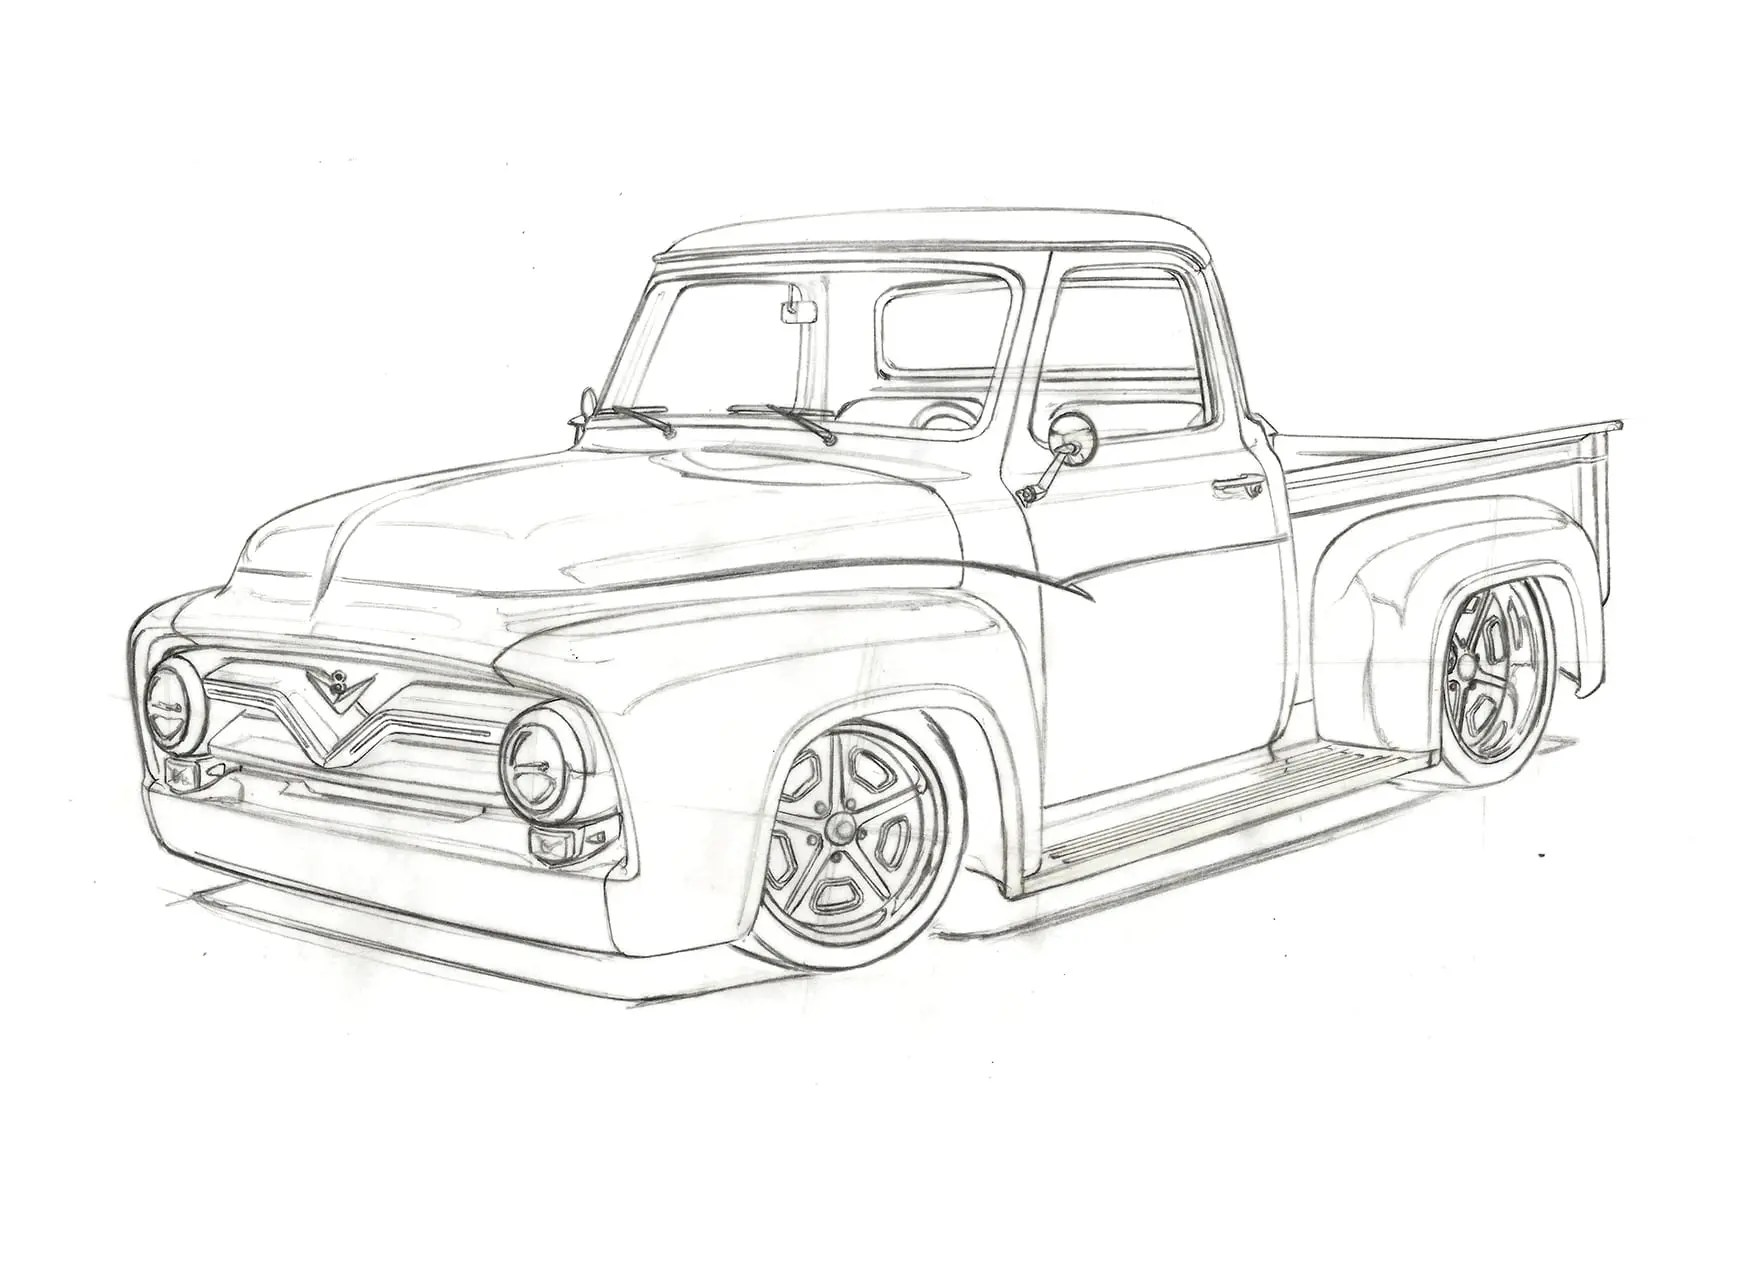 hight resolution of revised f100 sketch 1